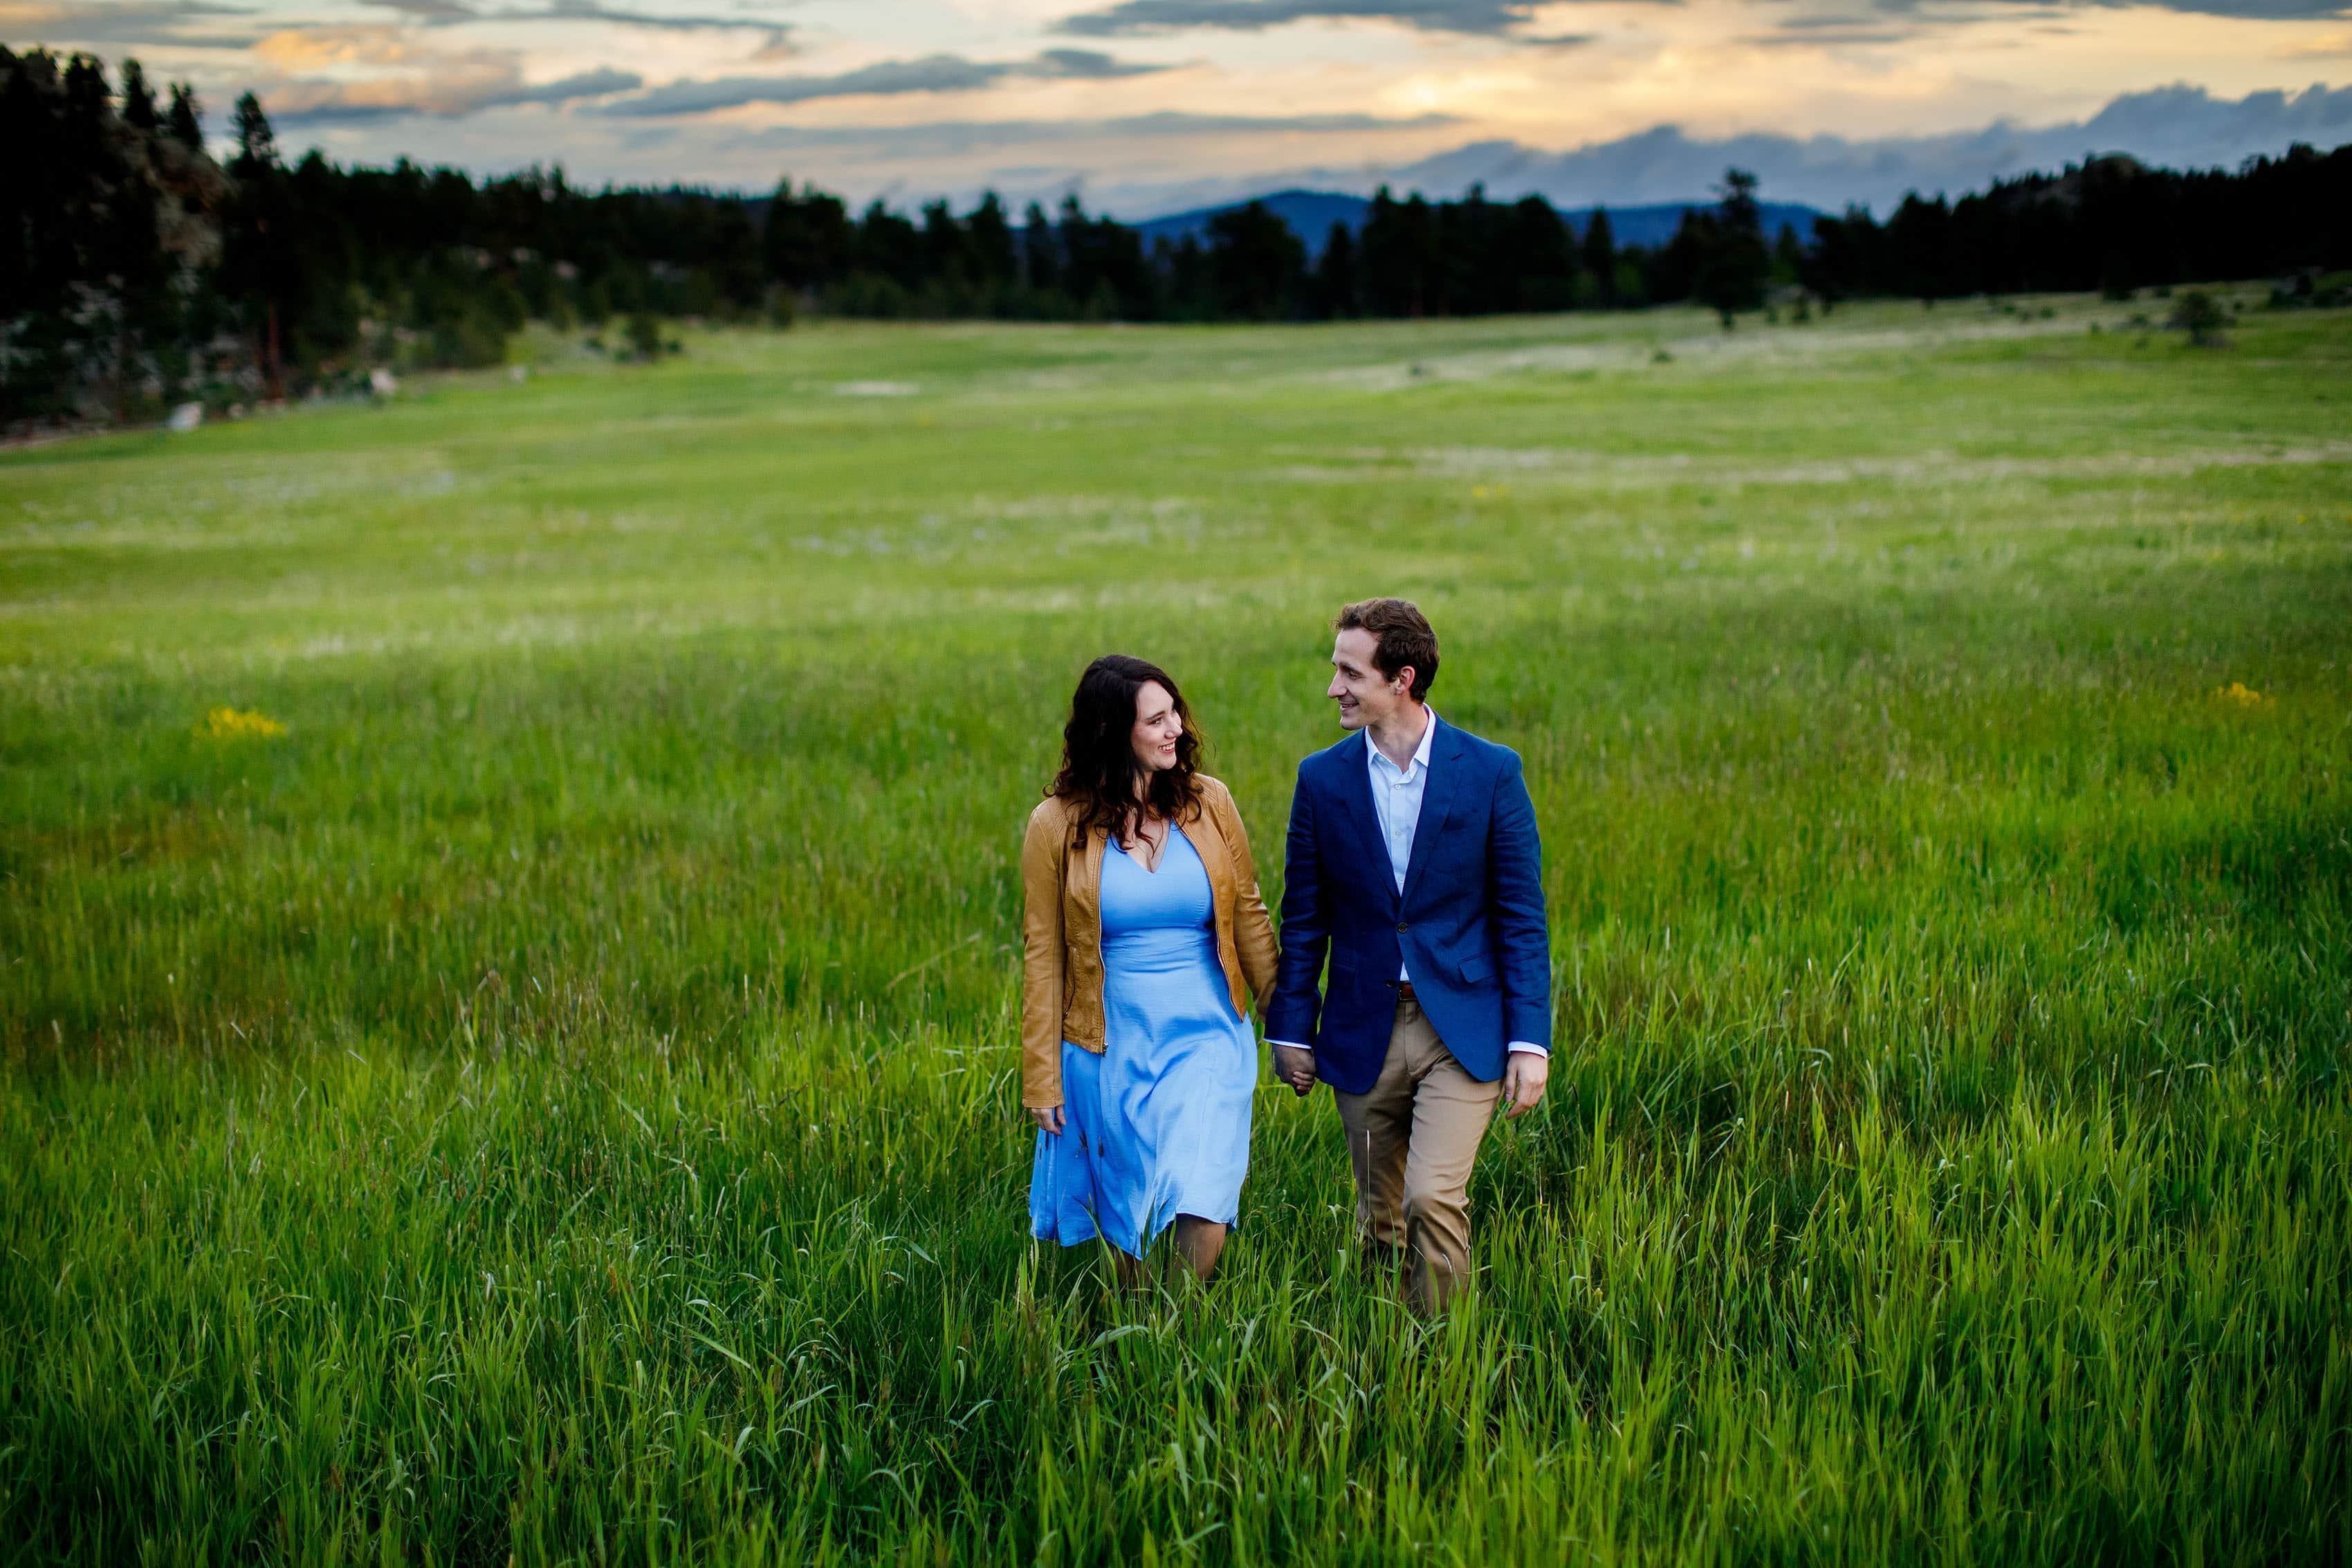 Meaghan and Matthew walk together in the meadow at Alderfer Three Sisters Park during their engagement session